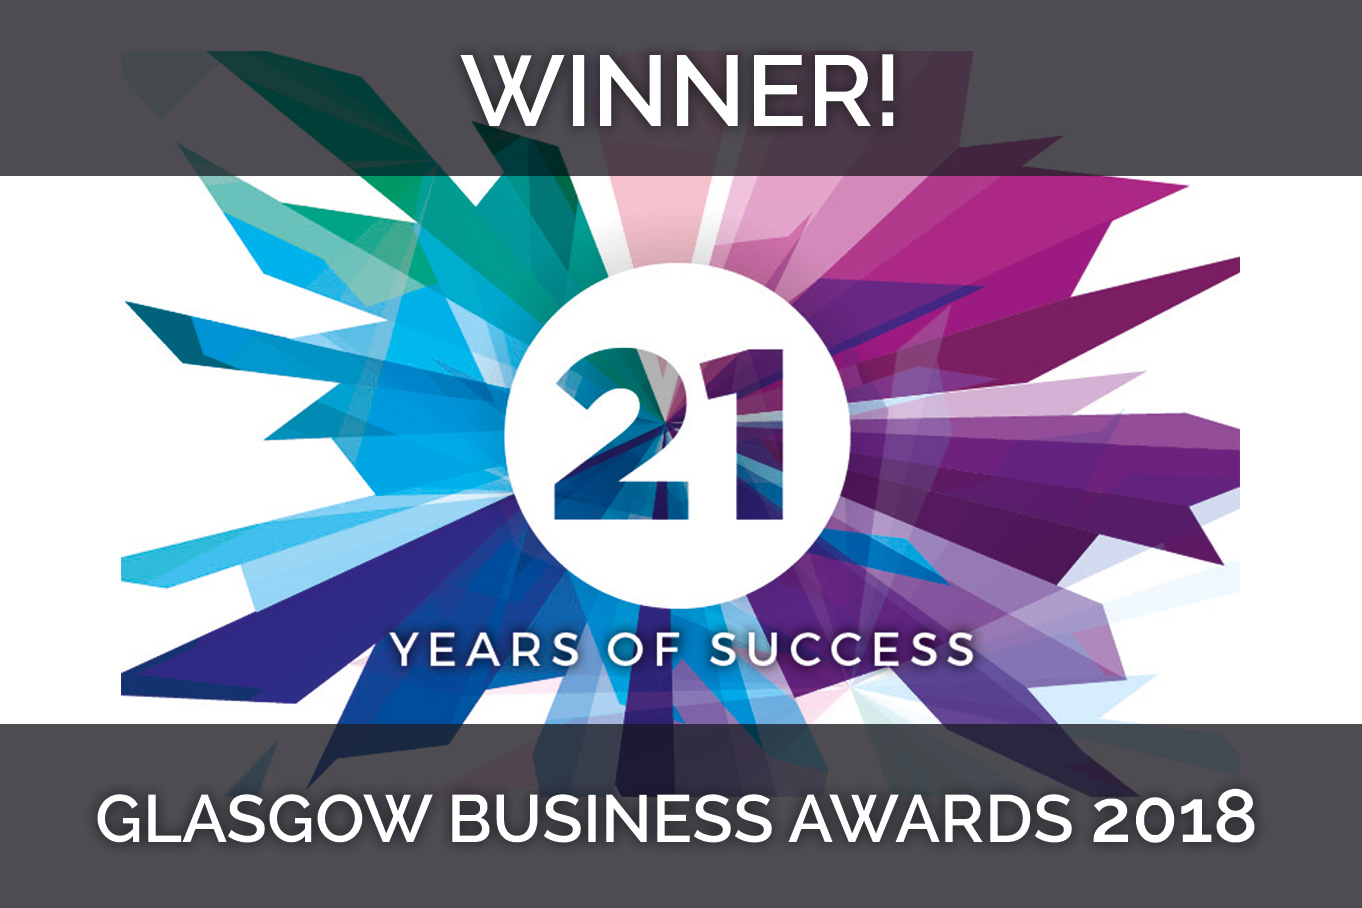 Entrepreneur of the Year at the Glasgow Business Awards